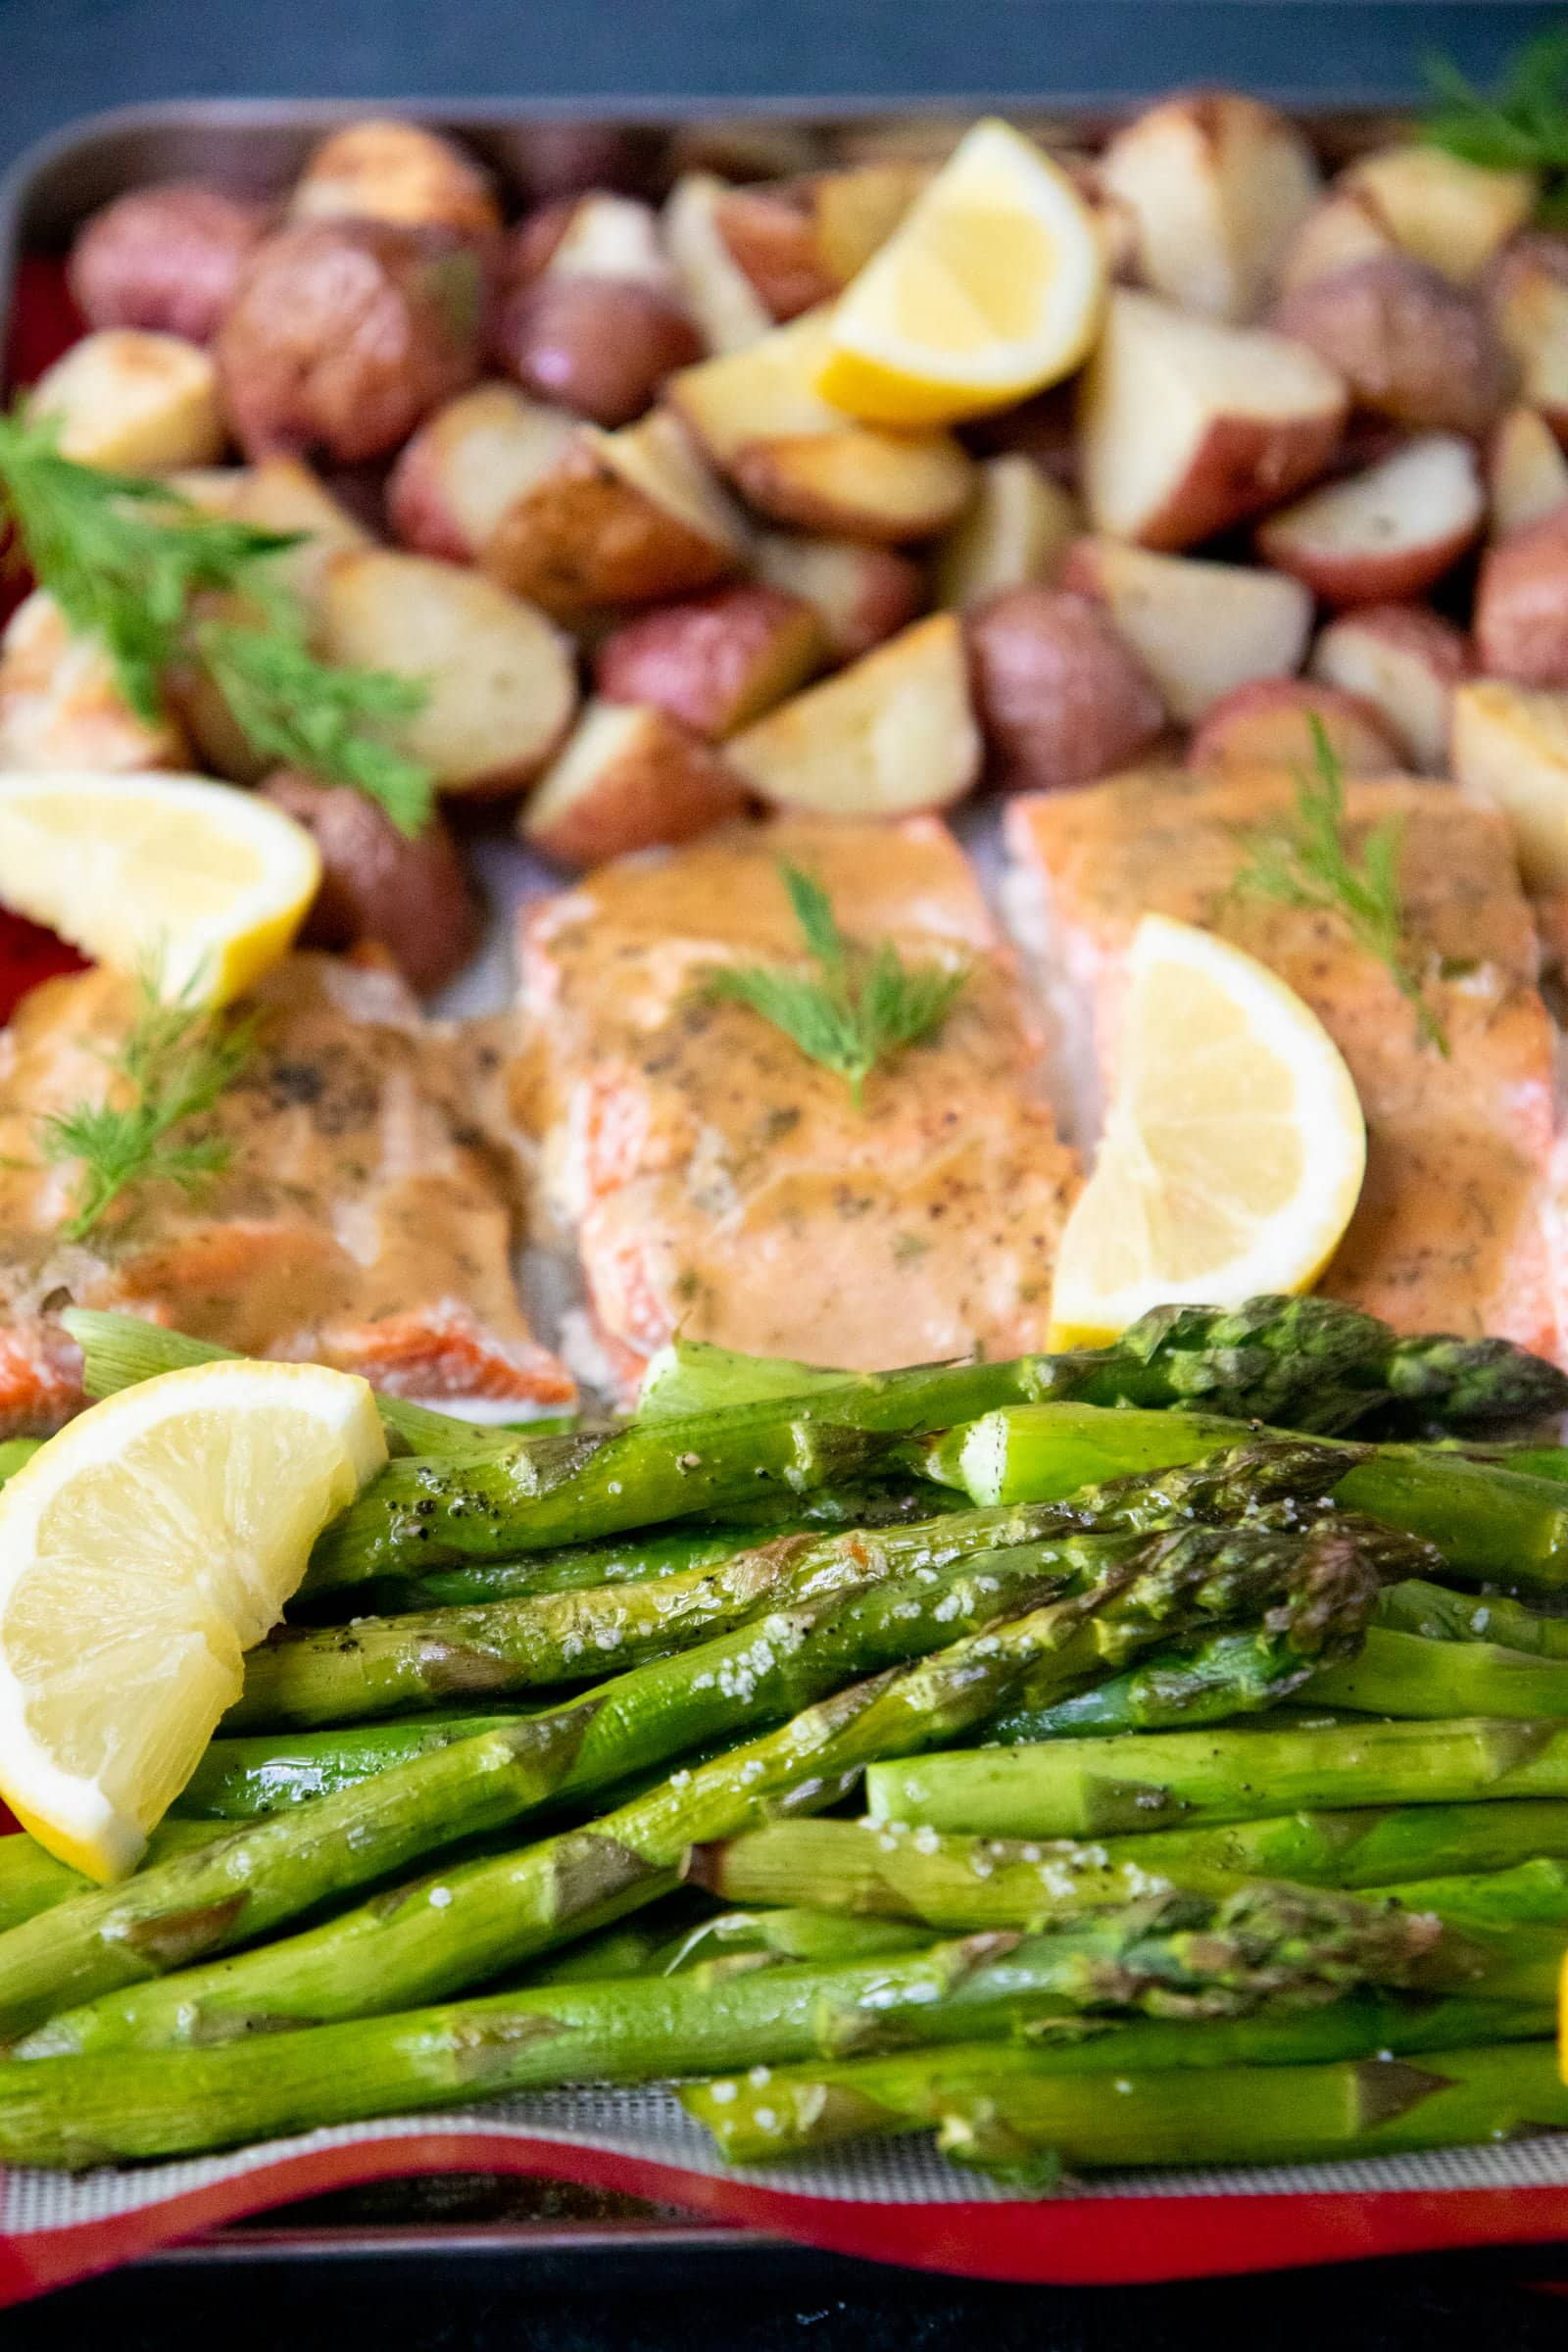 Asparagus, salmon, and potatoes arranged on a baking sheet.